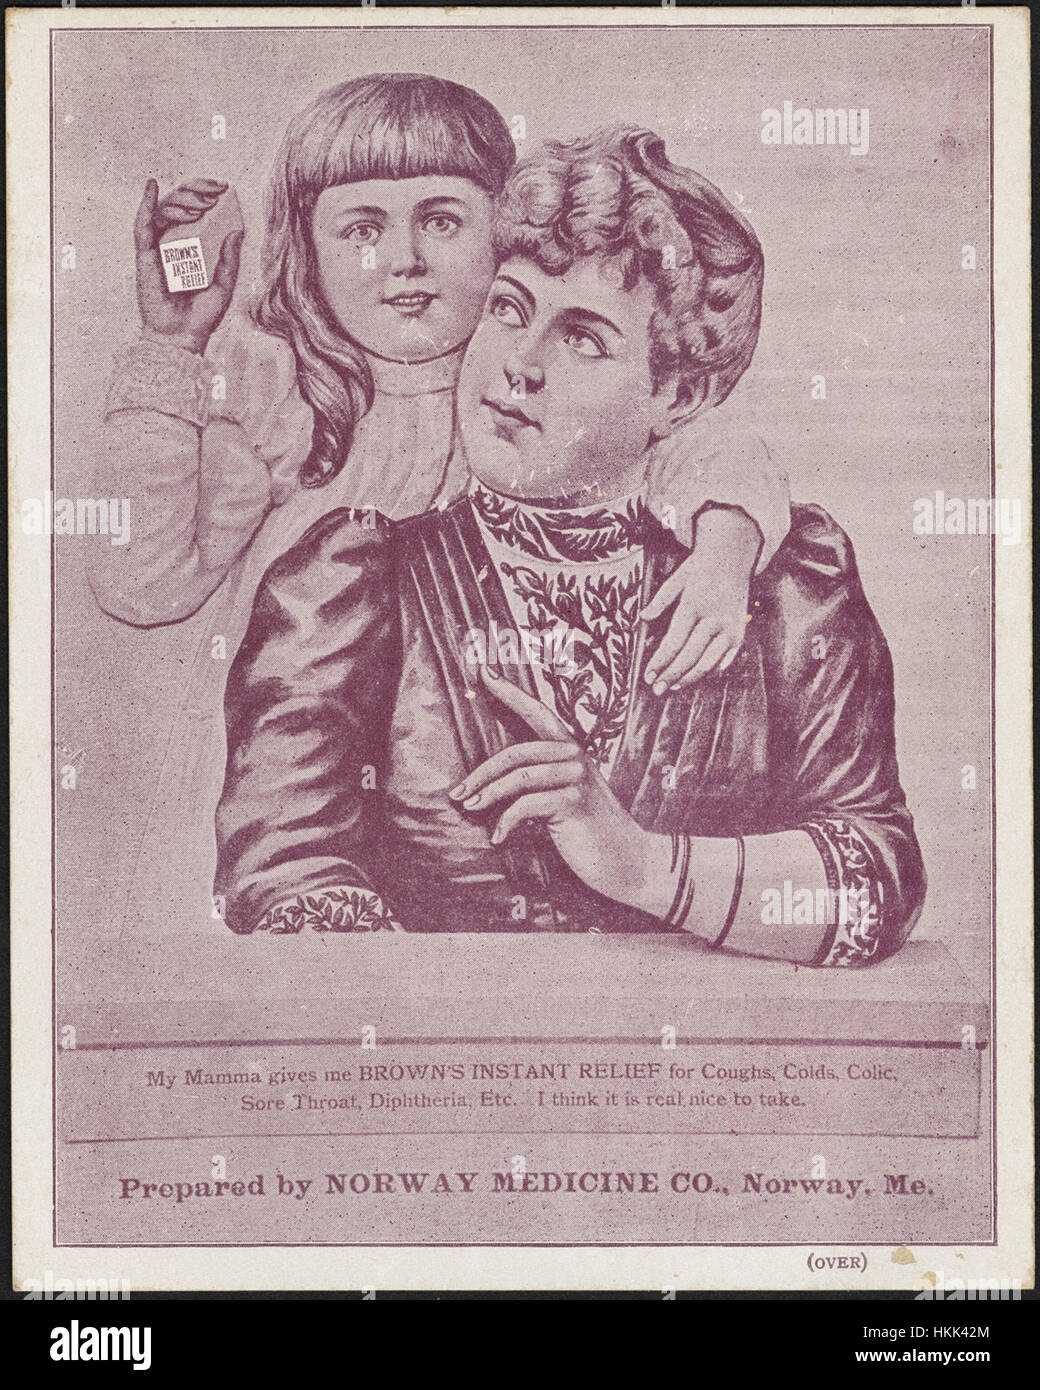 My mamma gives me Brown's instant relief for coughs, colds, colic, sore throat, diphtheria, etc. I think it - Stock Image